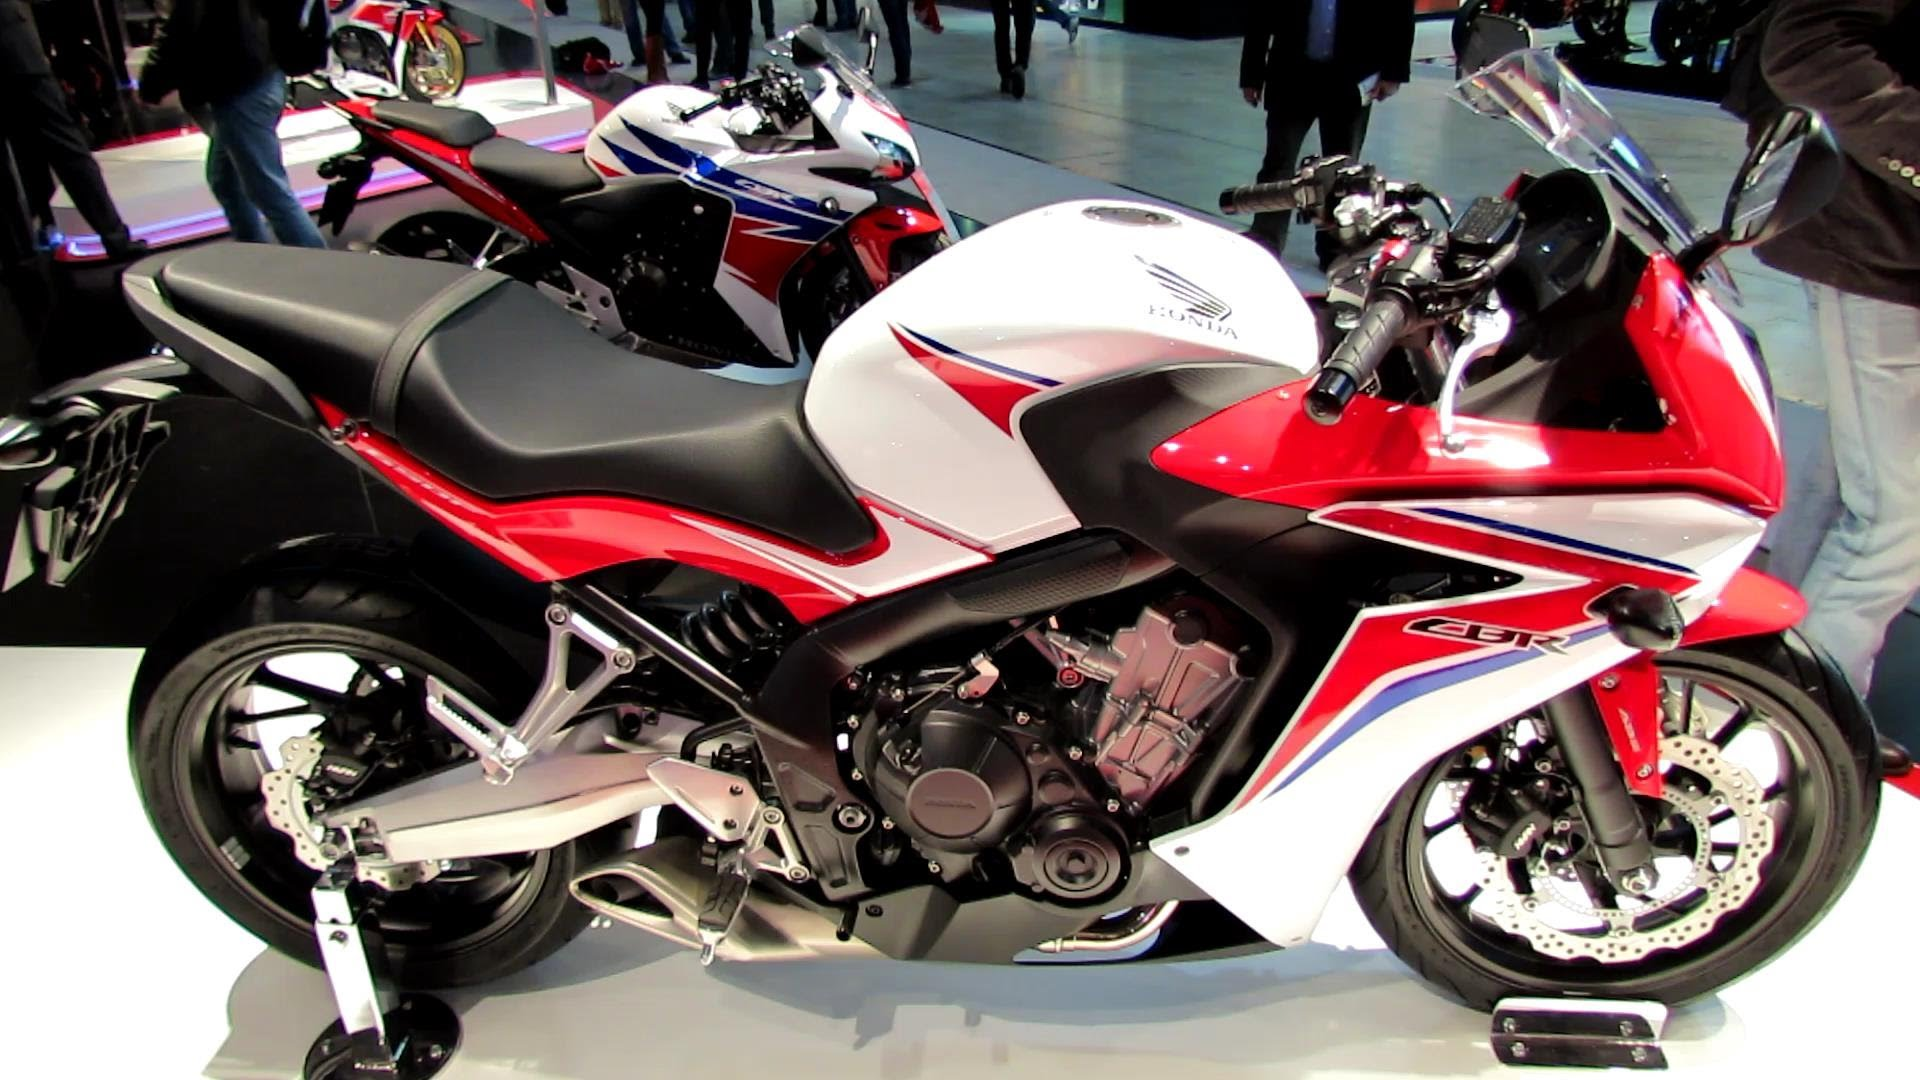 Honda CBR650F To Launch in India Soon